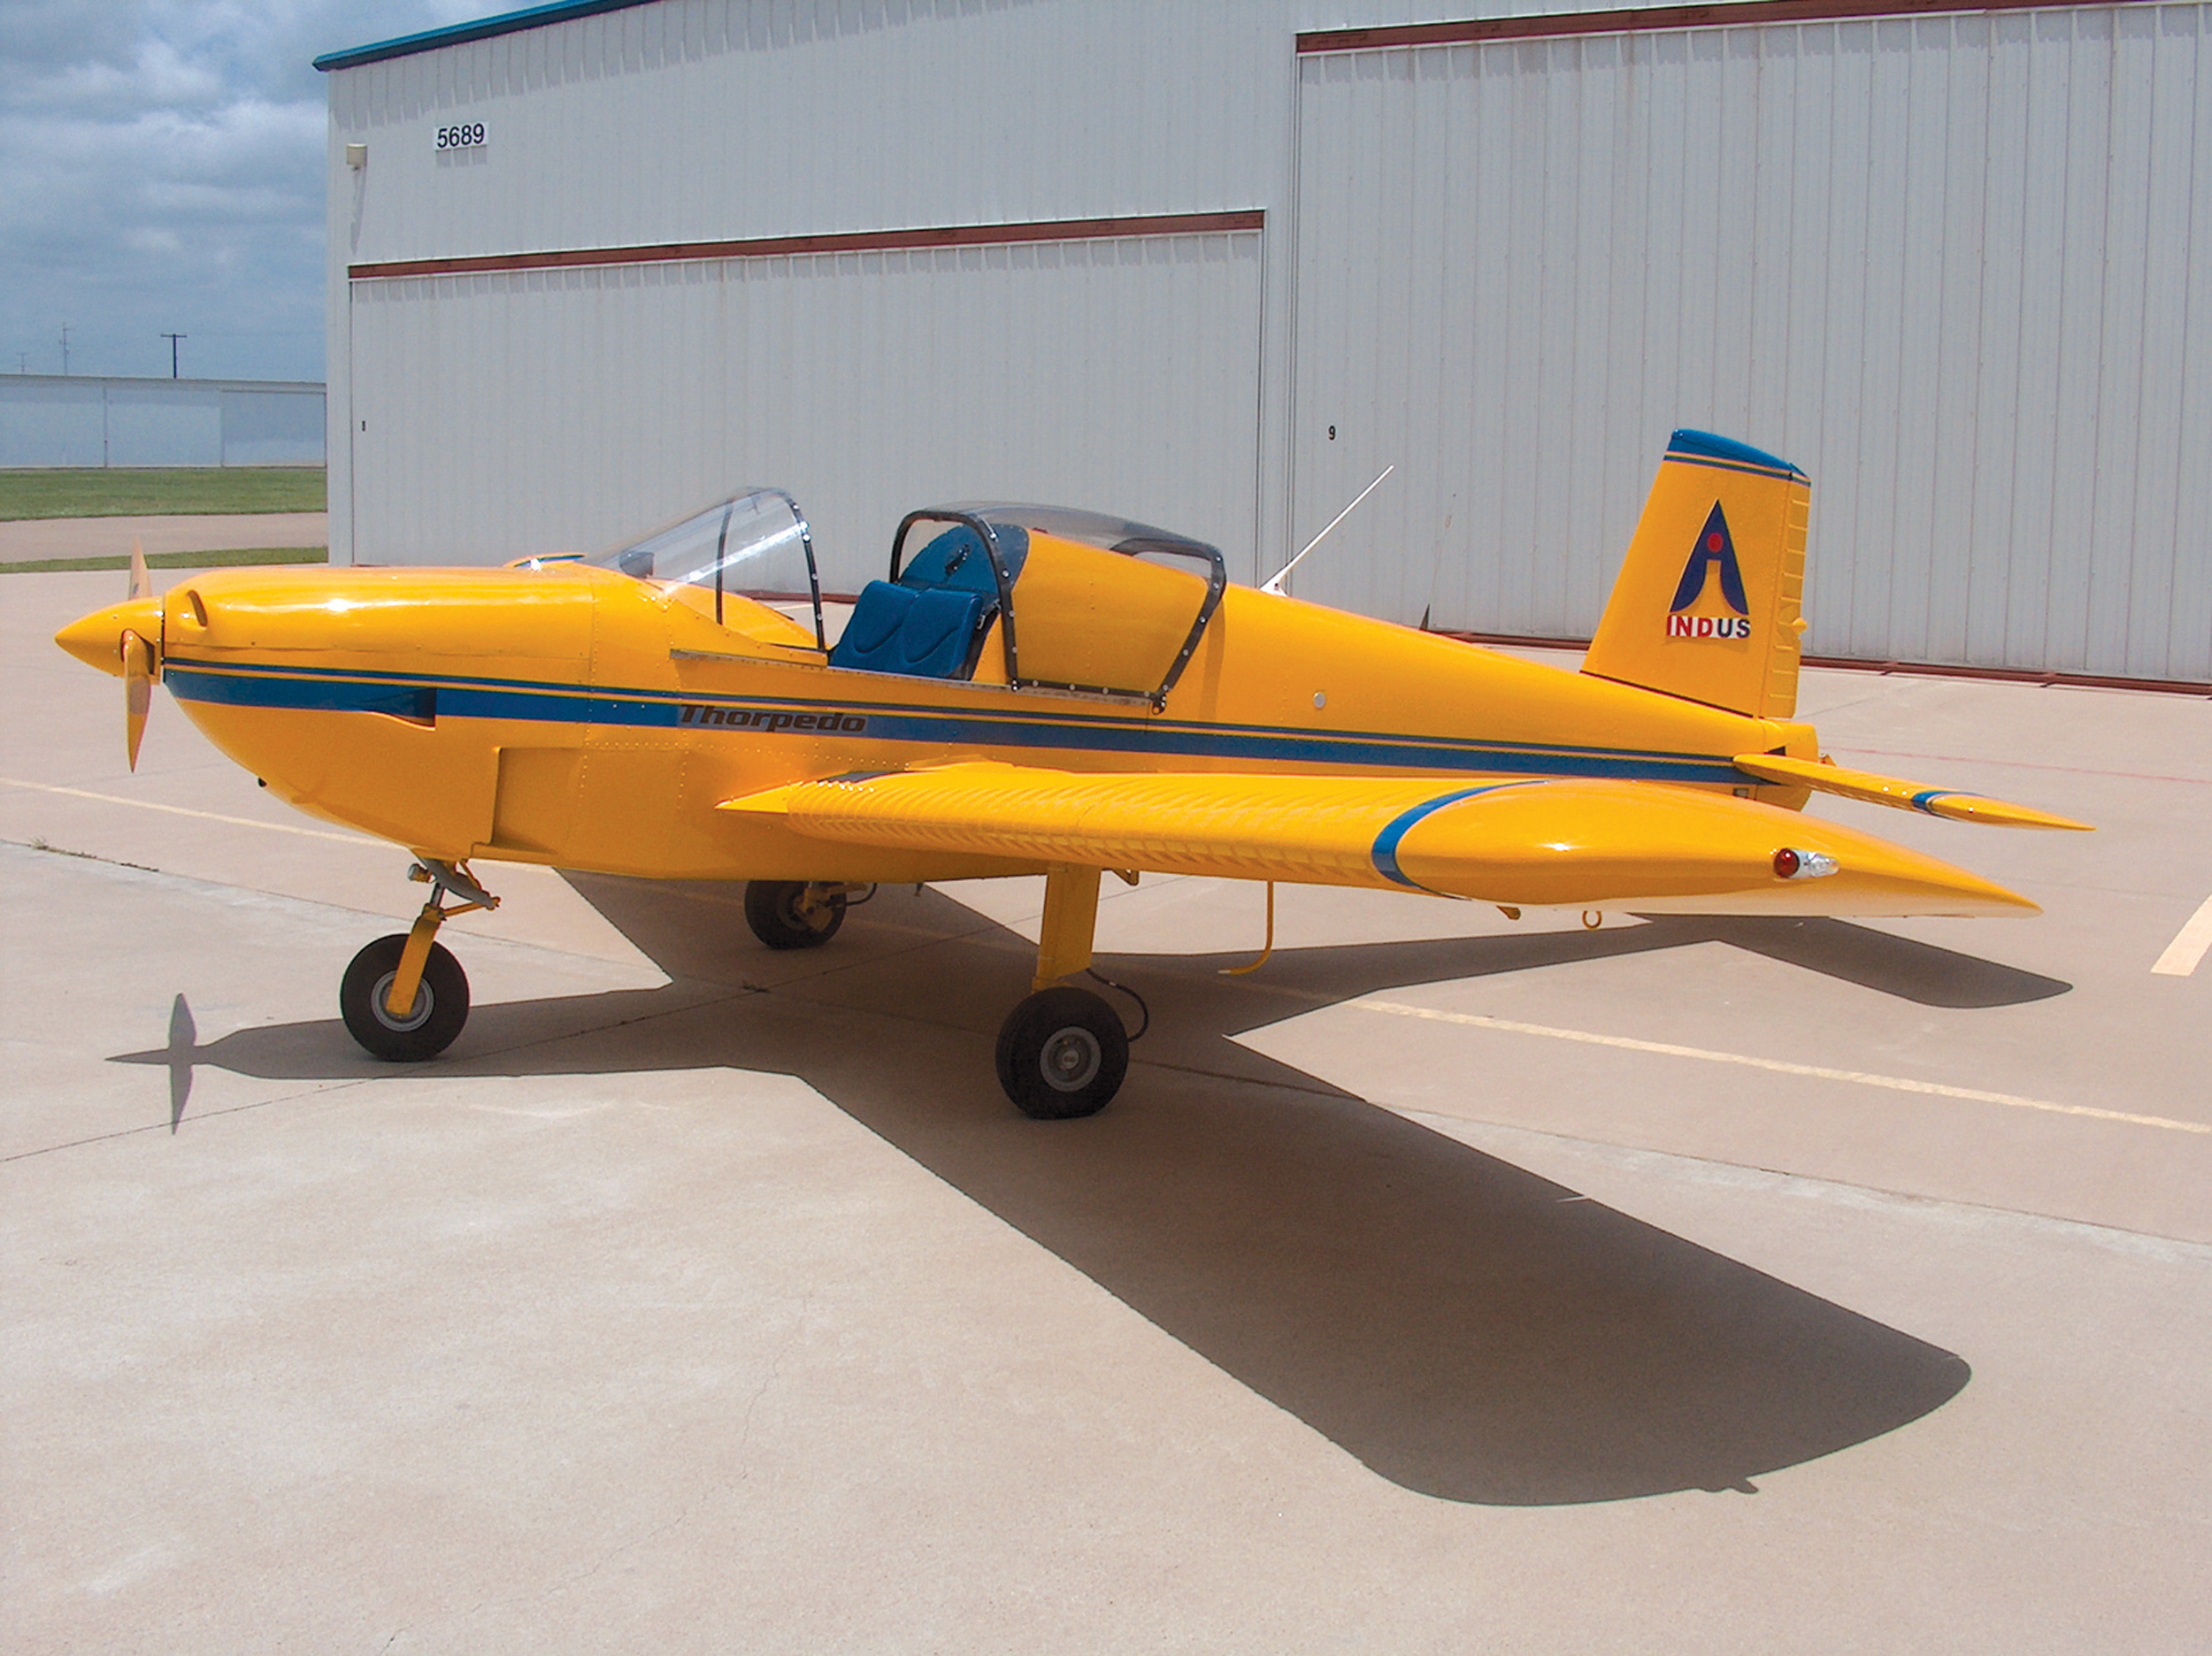 IndUS Aviation Becomes First U.S. Manufacturer to Certify Special Light Sport Aircraft